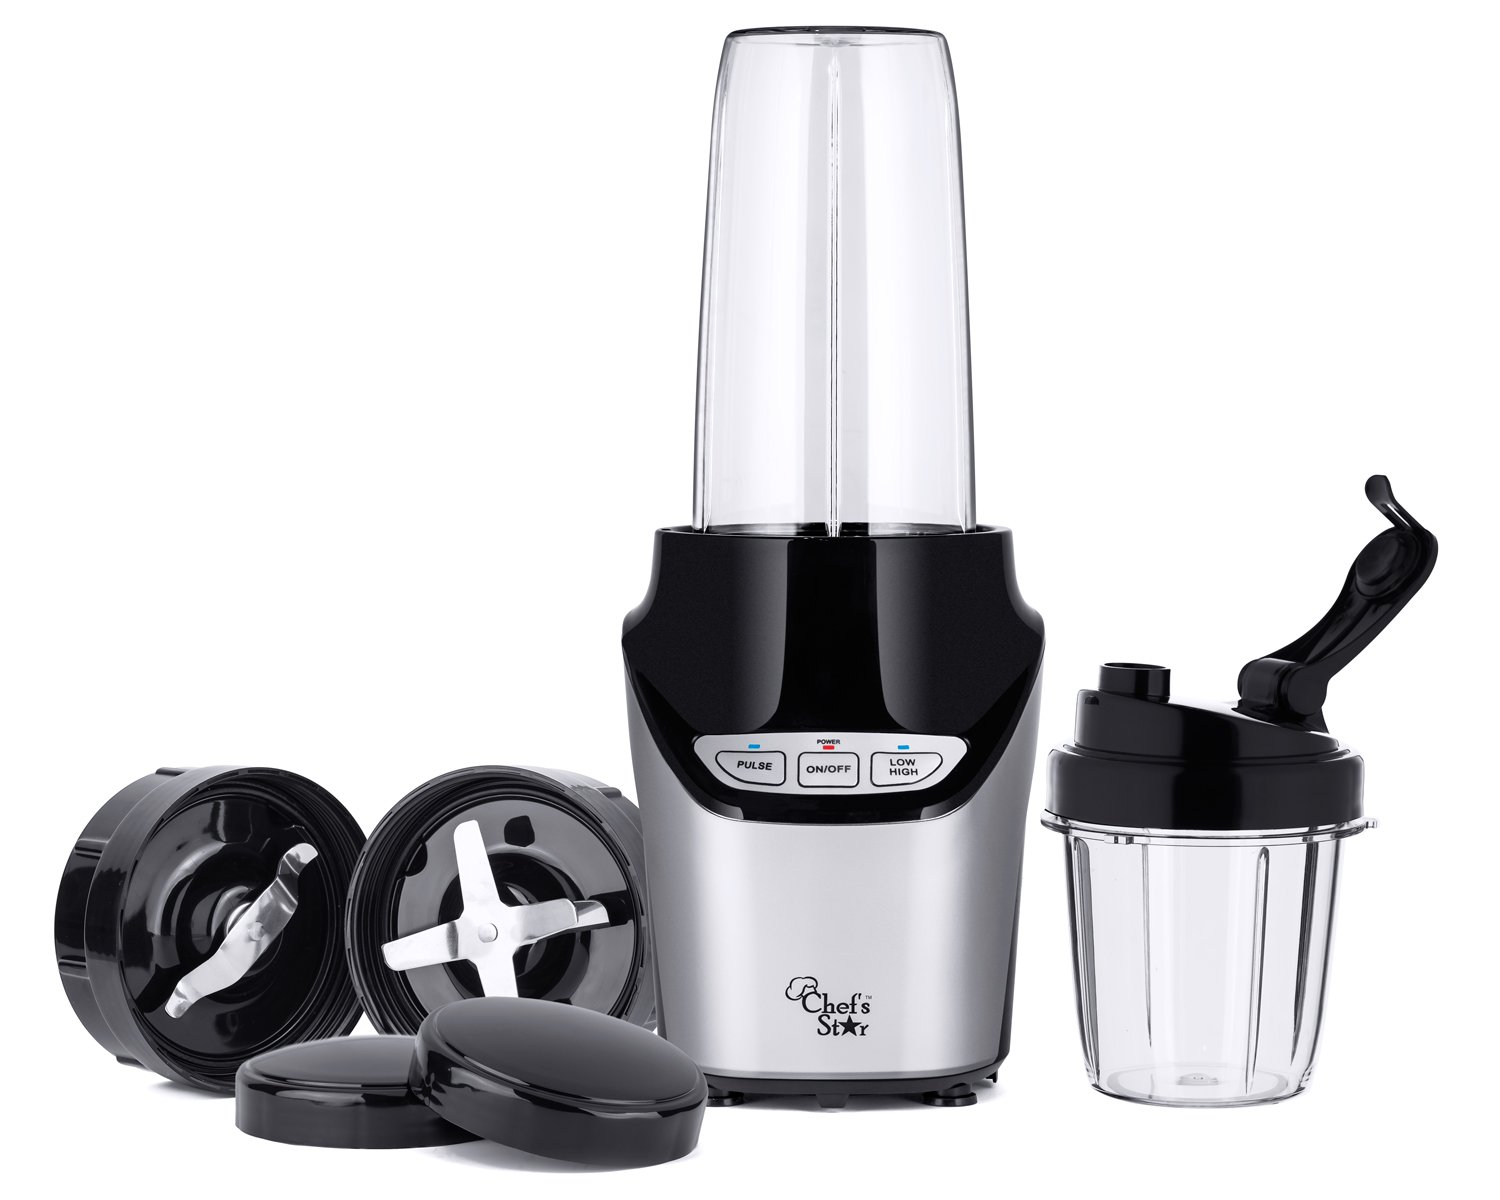 Chef's Star NE1000 Nutri Extractor - 1000W High Speed 8 Piece Personal Blender Mixer - Black